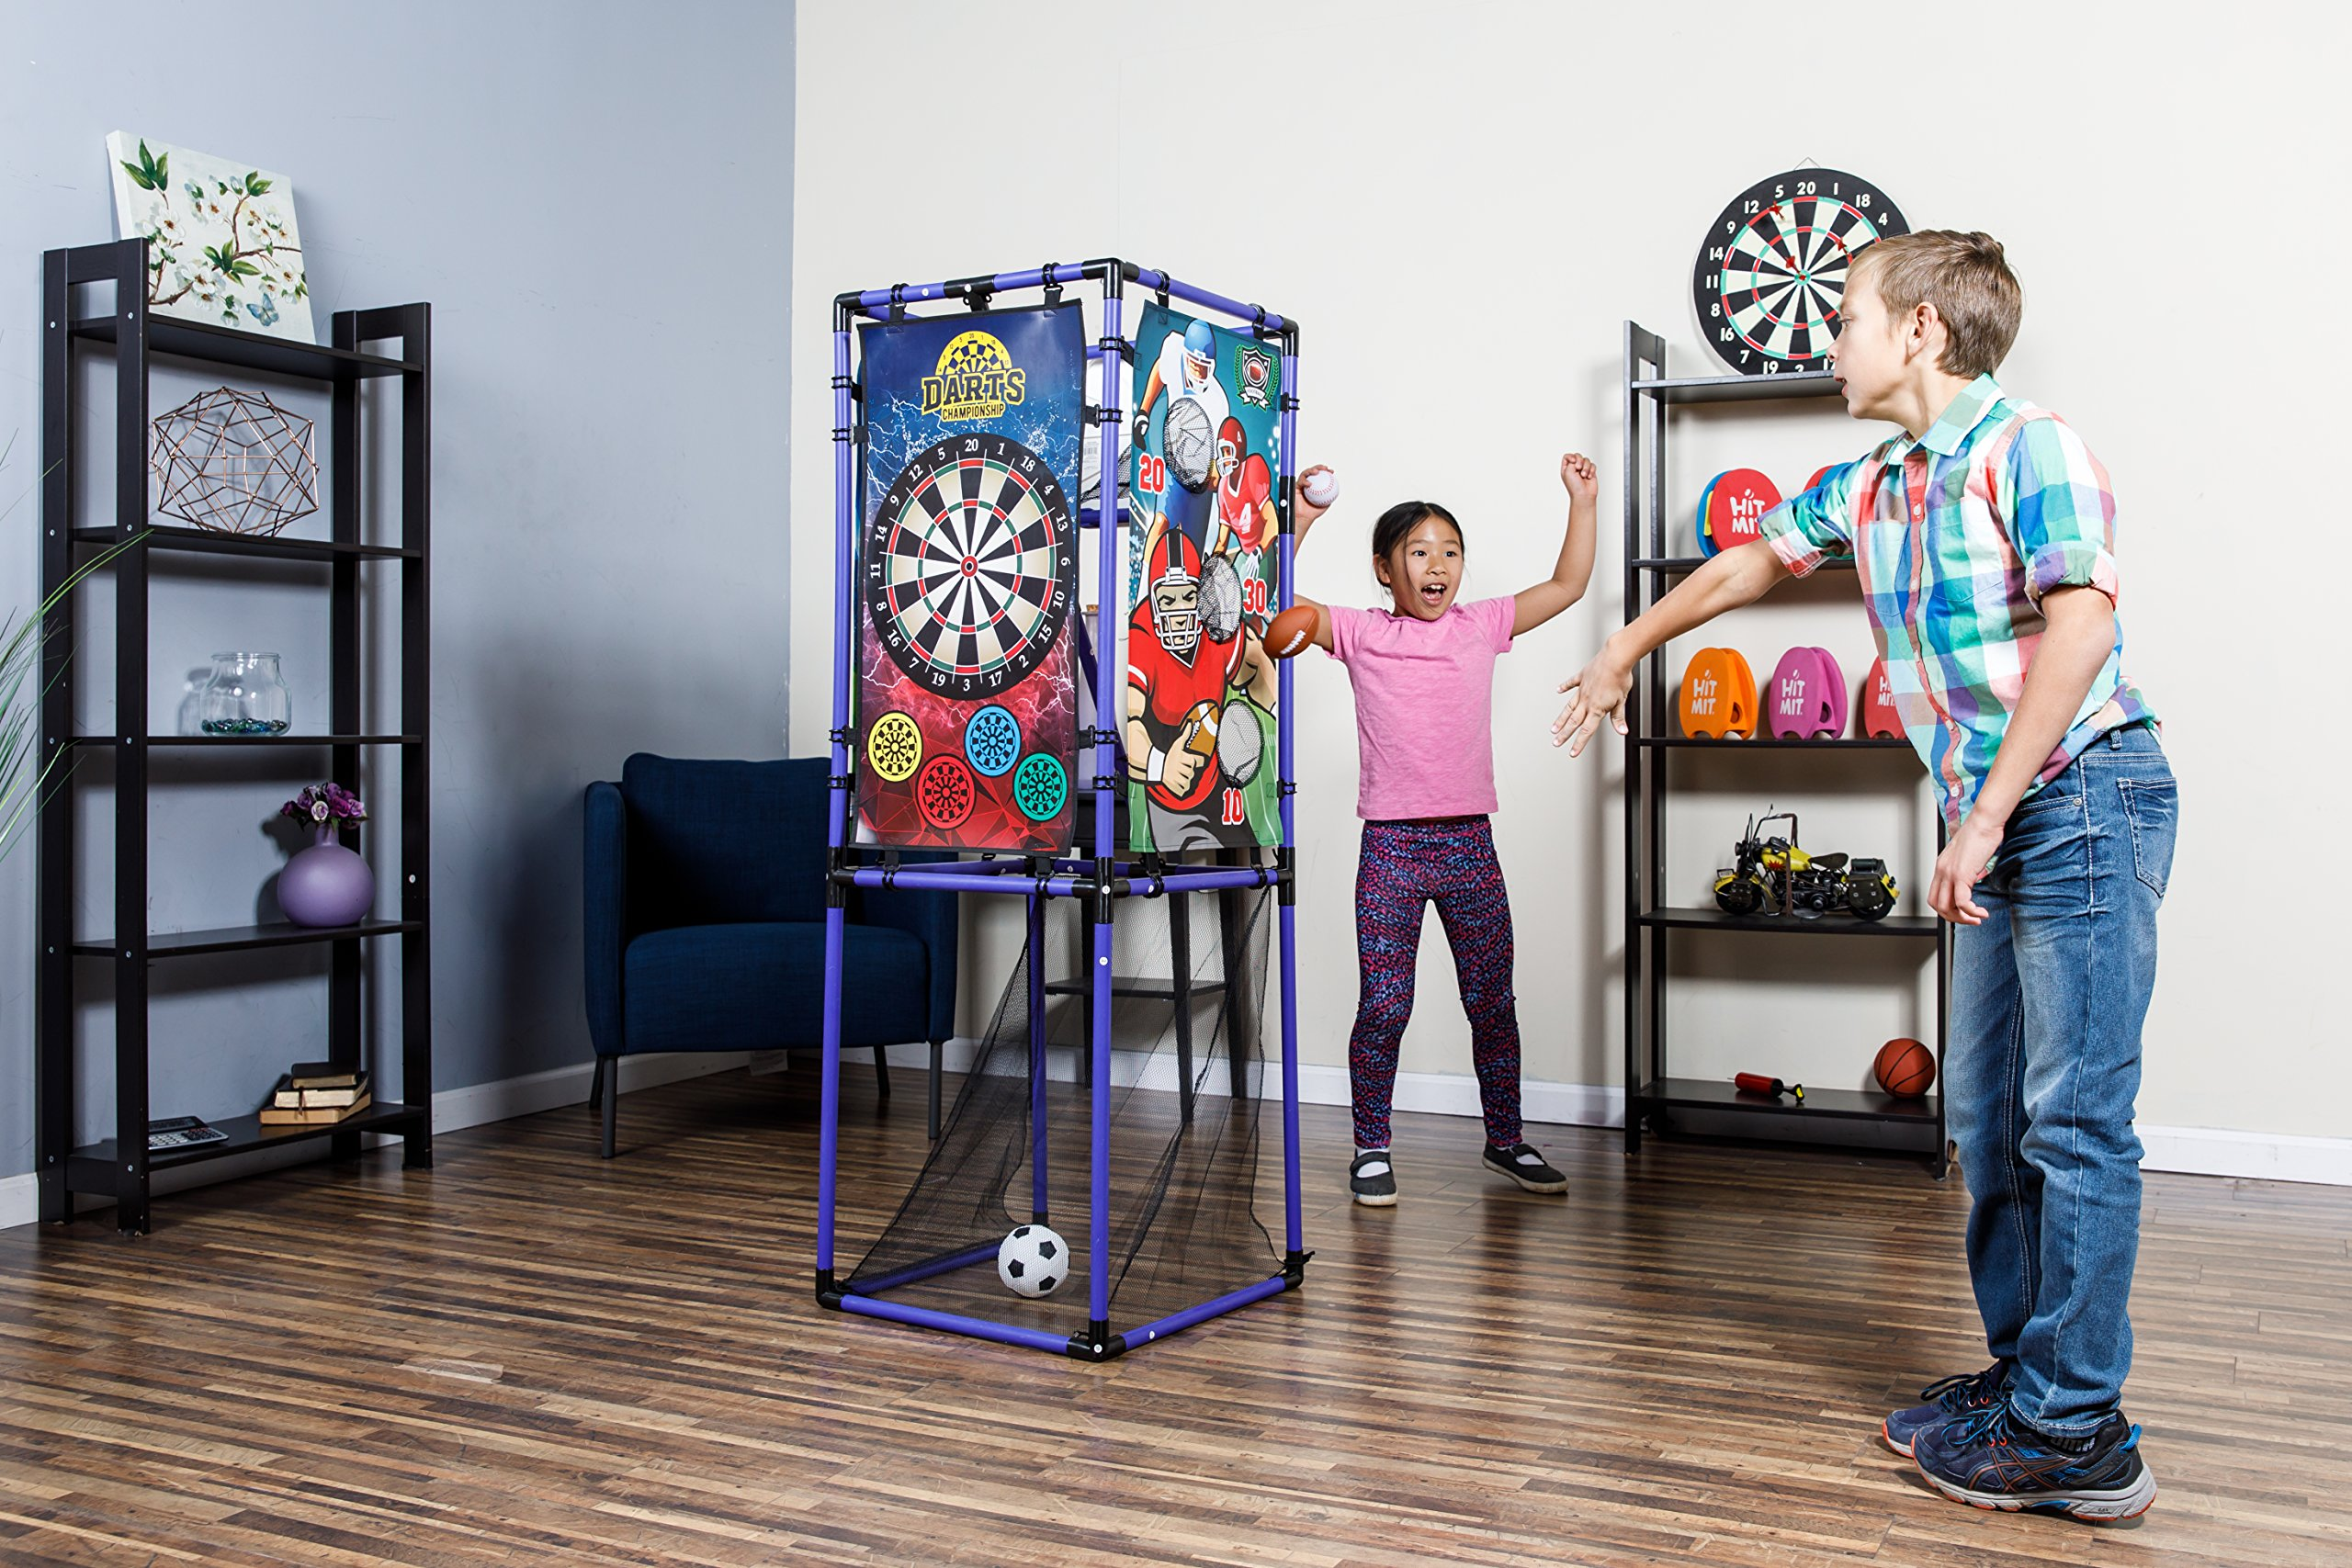 Sport Squad 5-in-1 Multi-Sport Kid's Game Set – Features Baseball, Basketball, Football, Soccer, Darts – Great for Indoor and Outdoor Play by Sport Squad (Image #8)